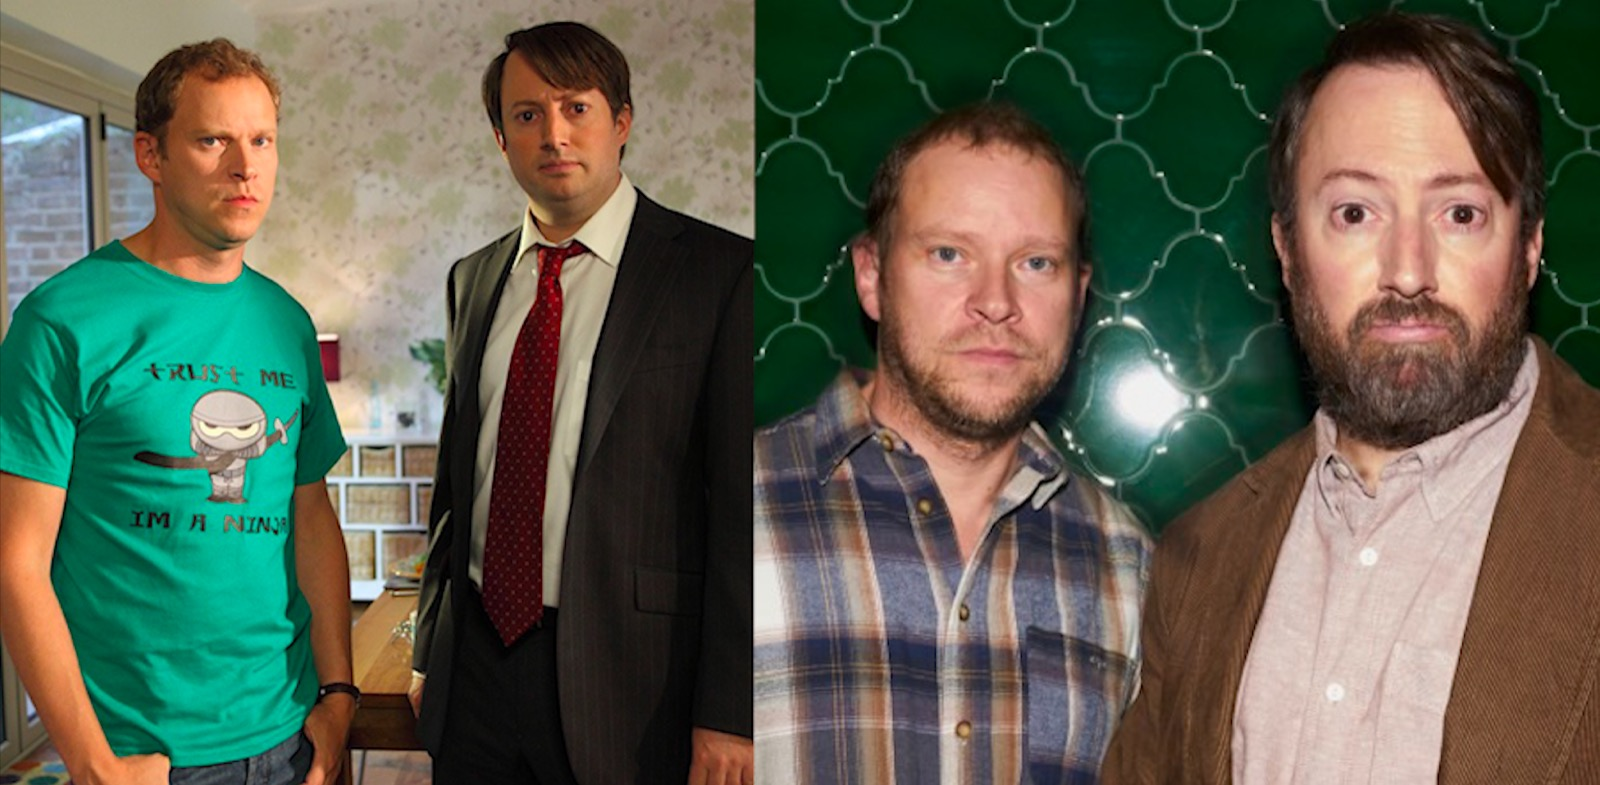 Mitchell and Webb confirm they do intend to revive Peep Show